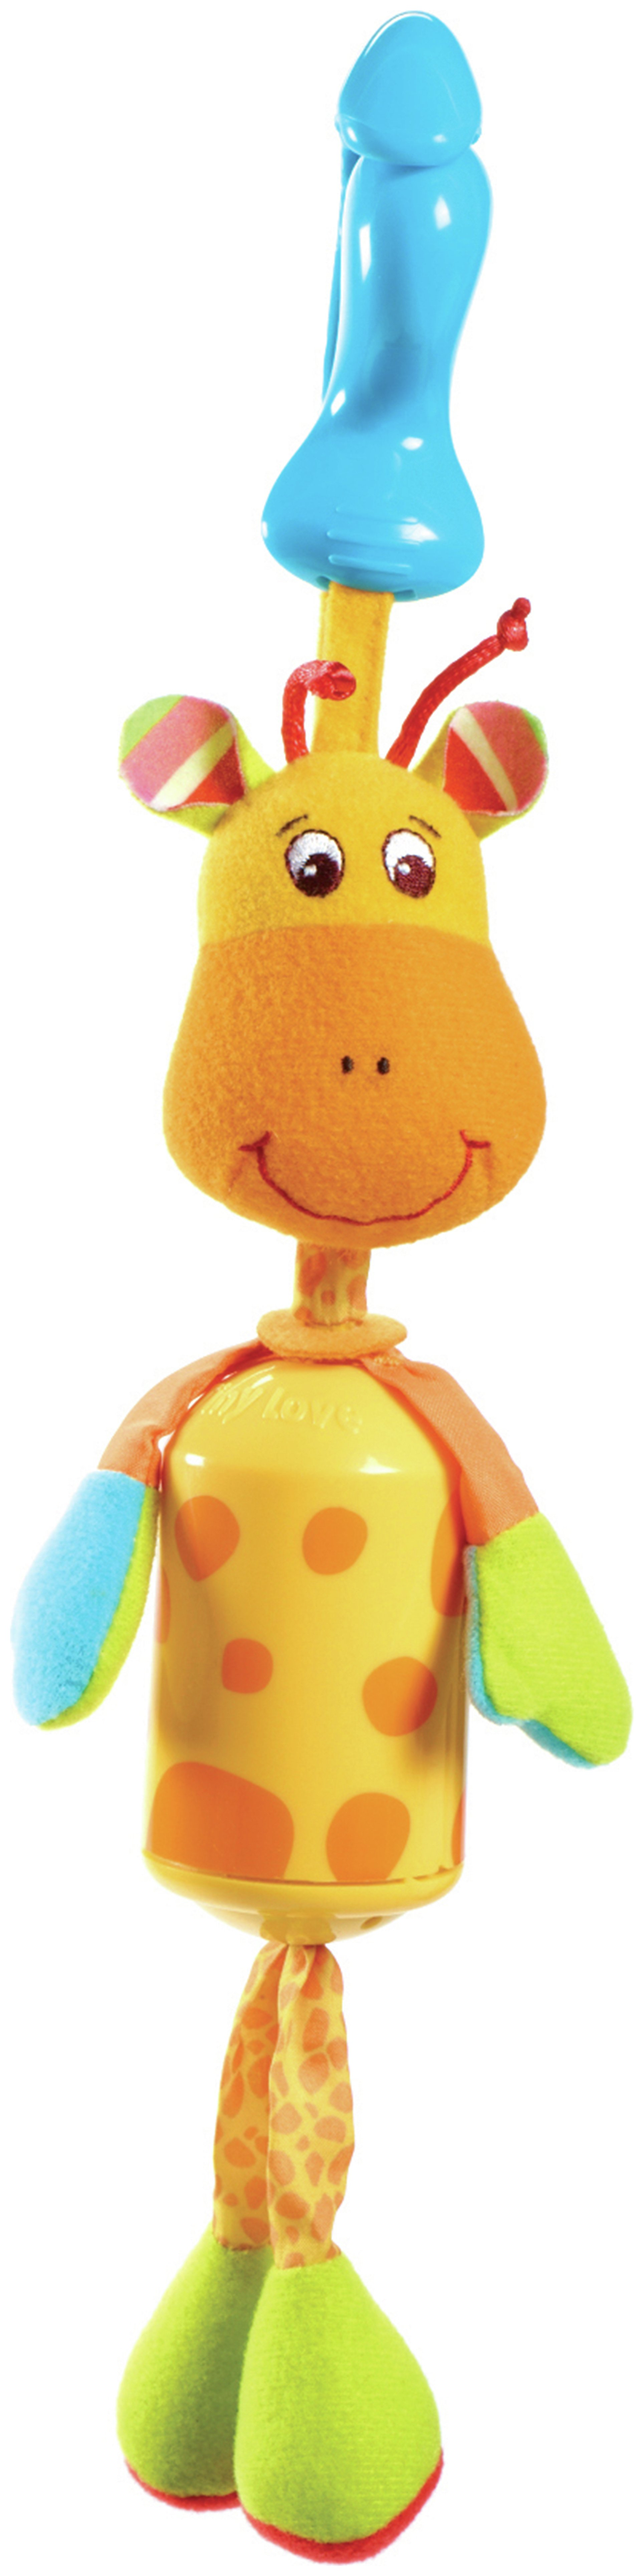 Image of Tiny Love - Wind-Chime - Baby Giraffe - Baby Toy